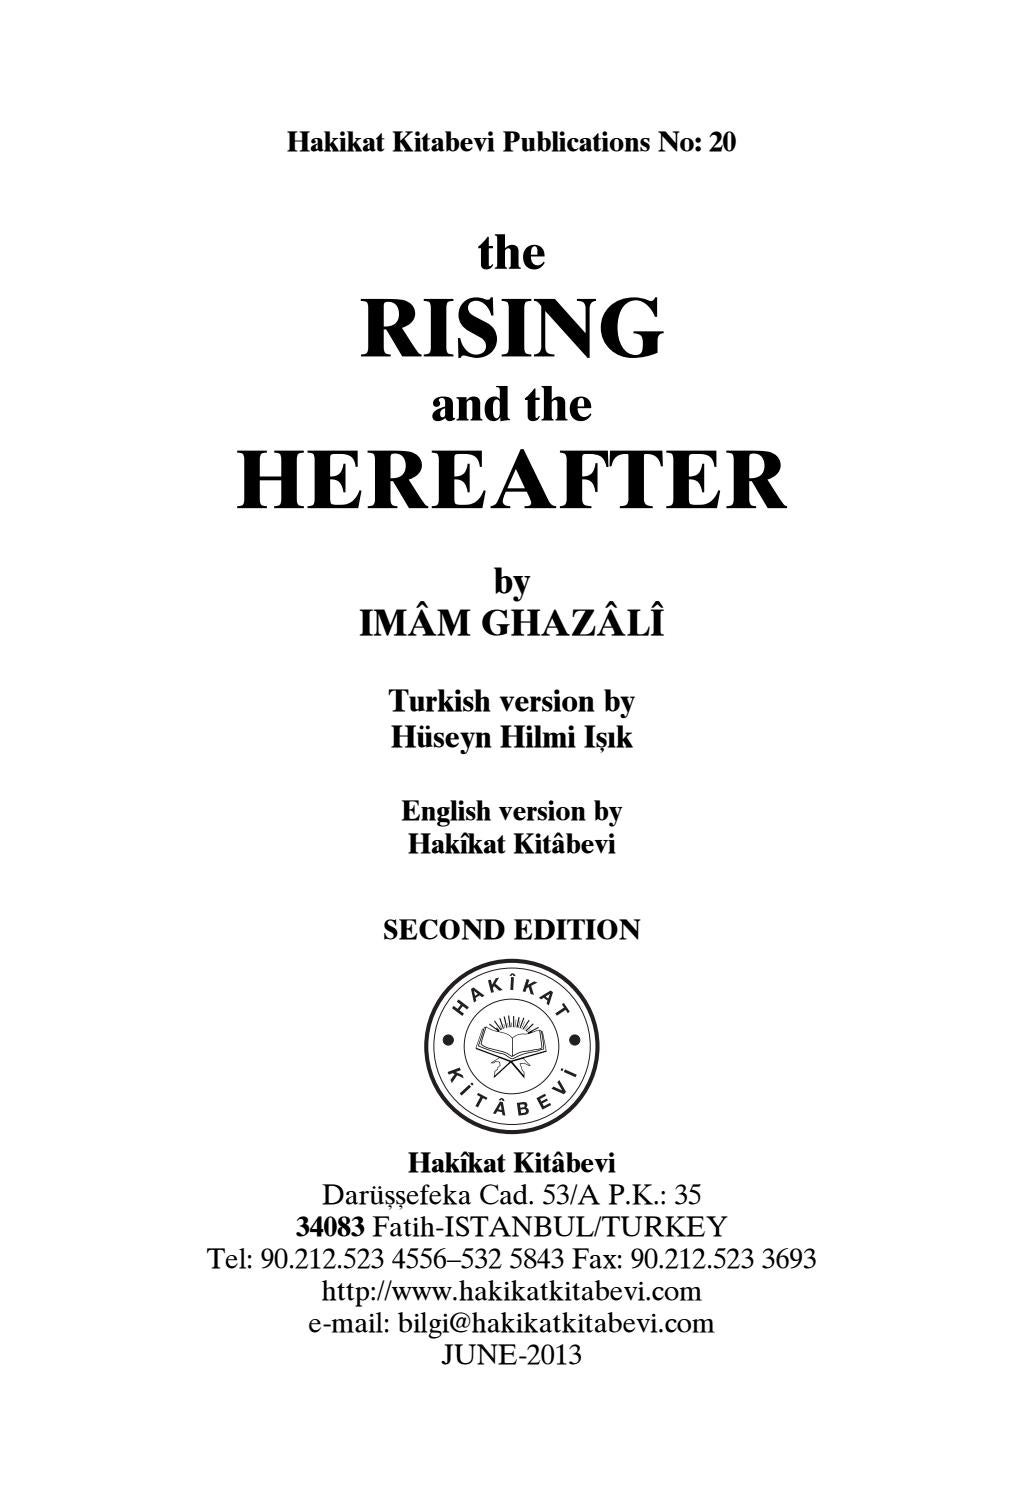 The Rising and The Hereafter - IMAM GHAZALI by bookdistributor55 - issuu